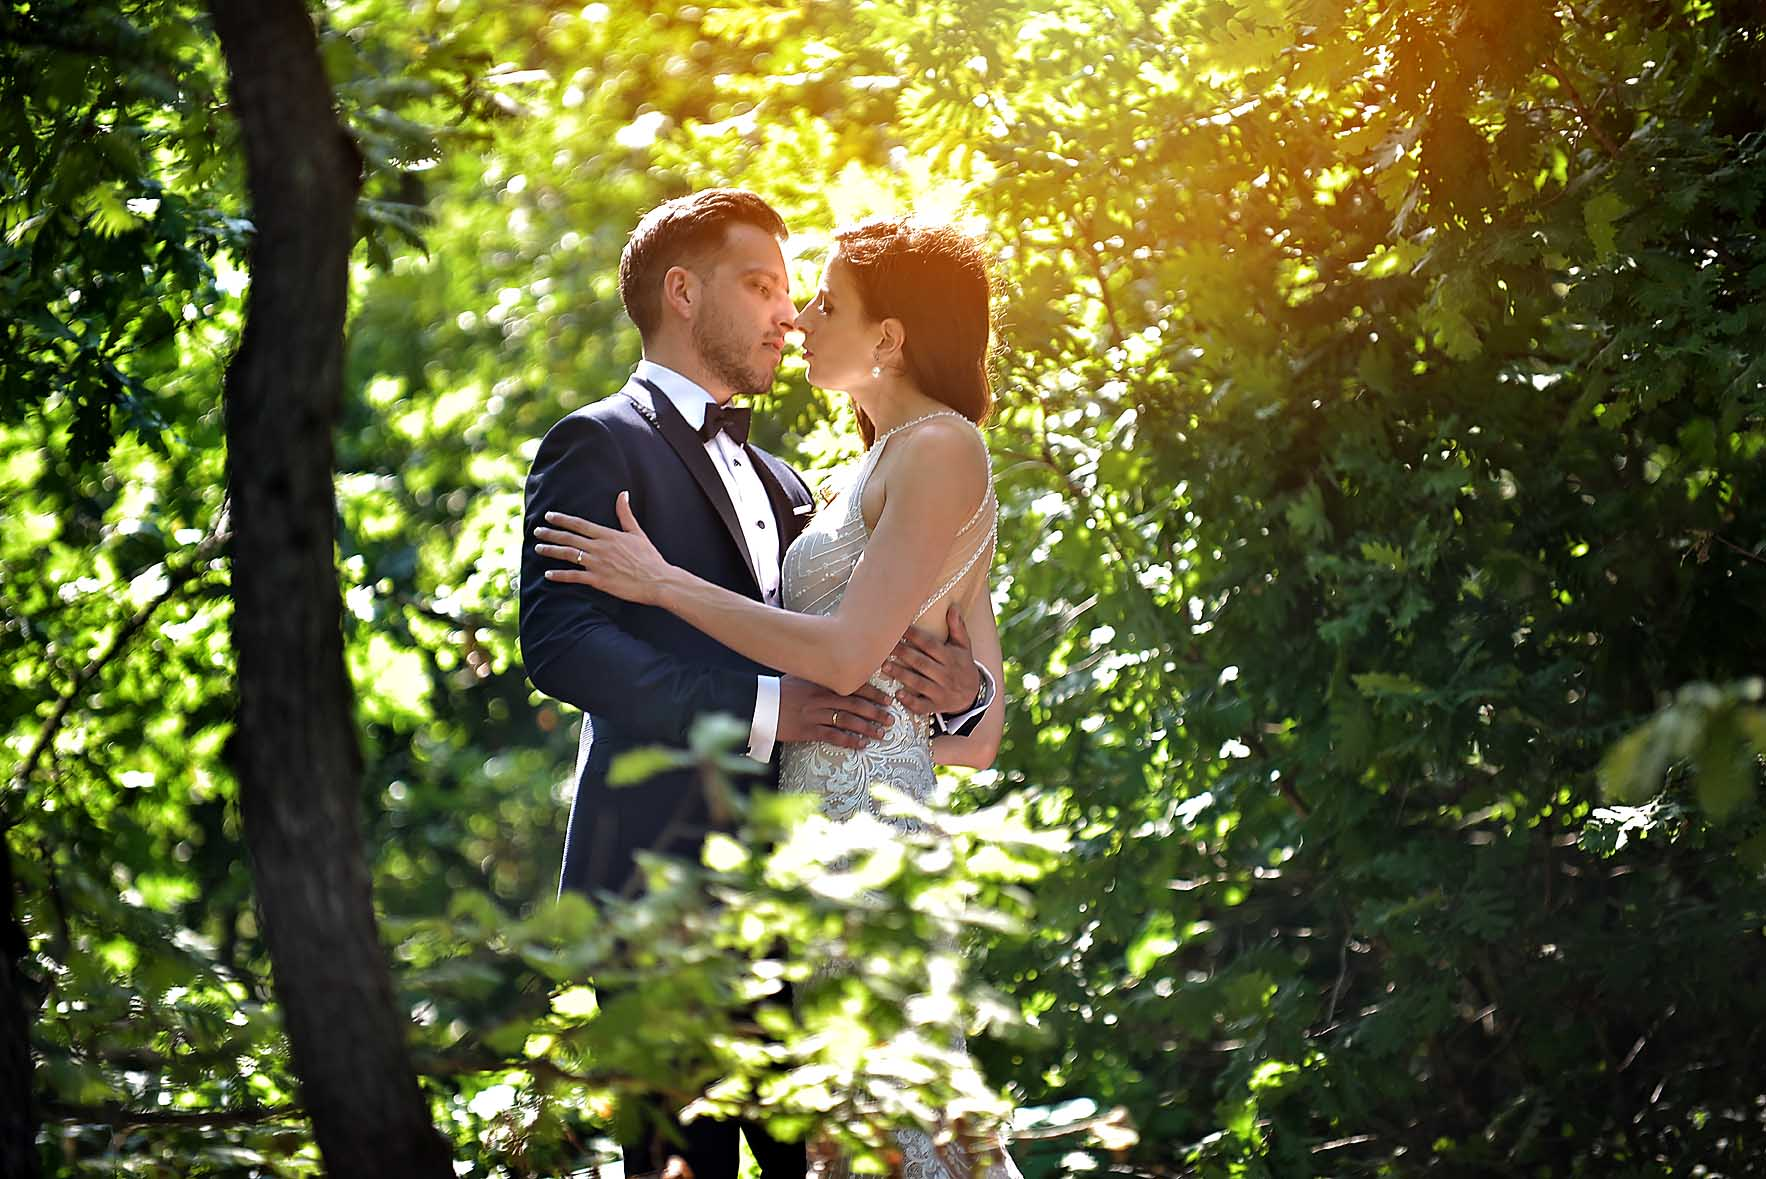 wedding-limni-plastira-hotel-kazarma-wedding-karditsa-sunlight